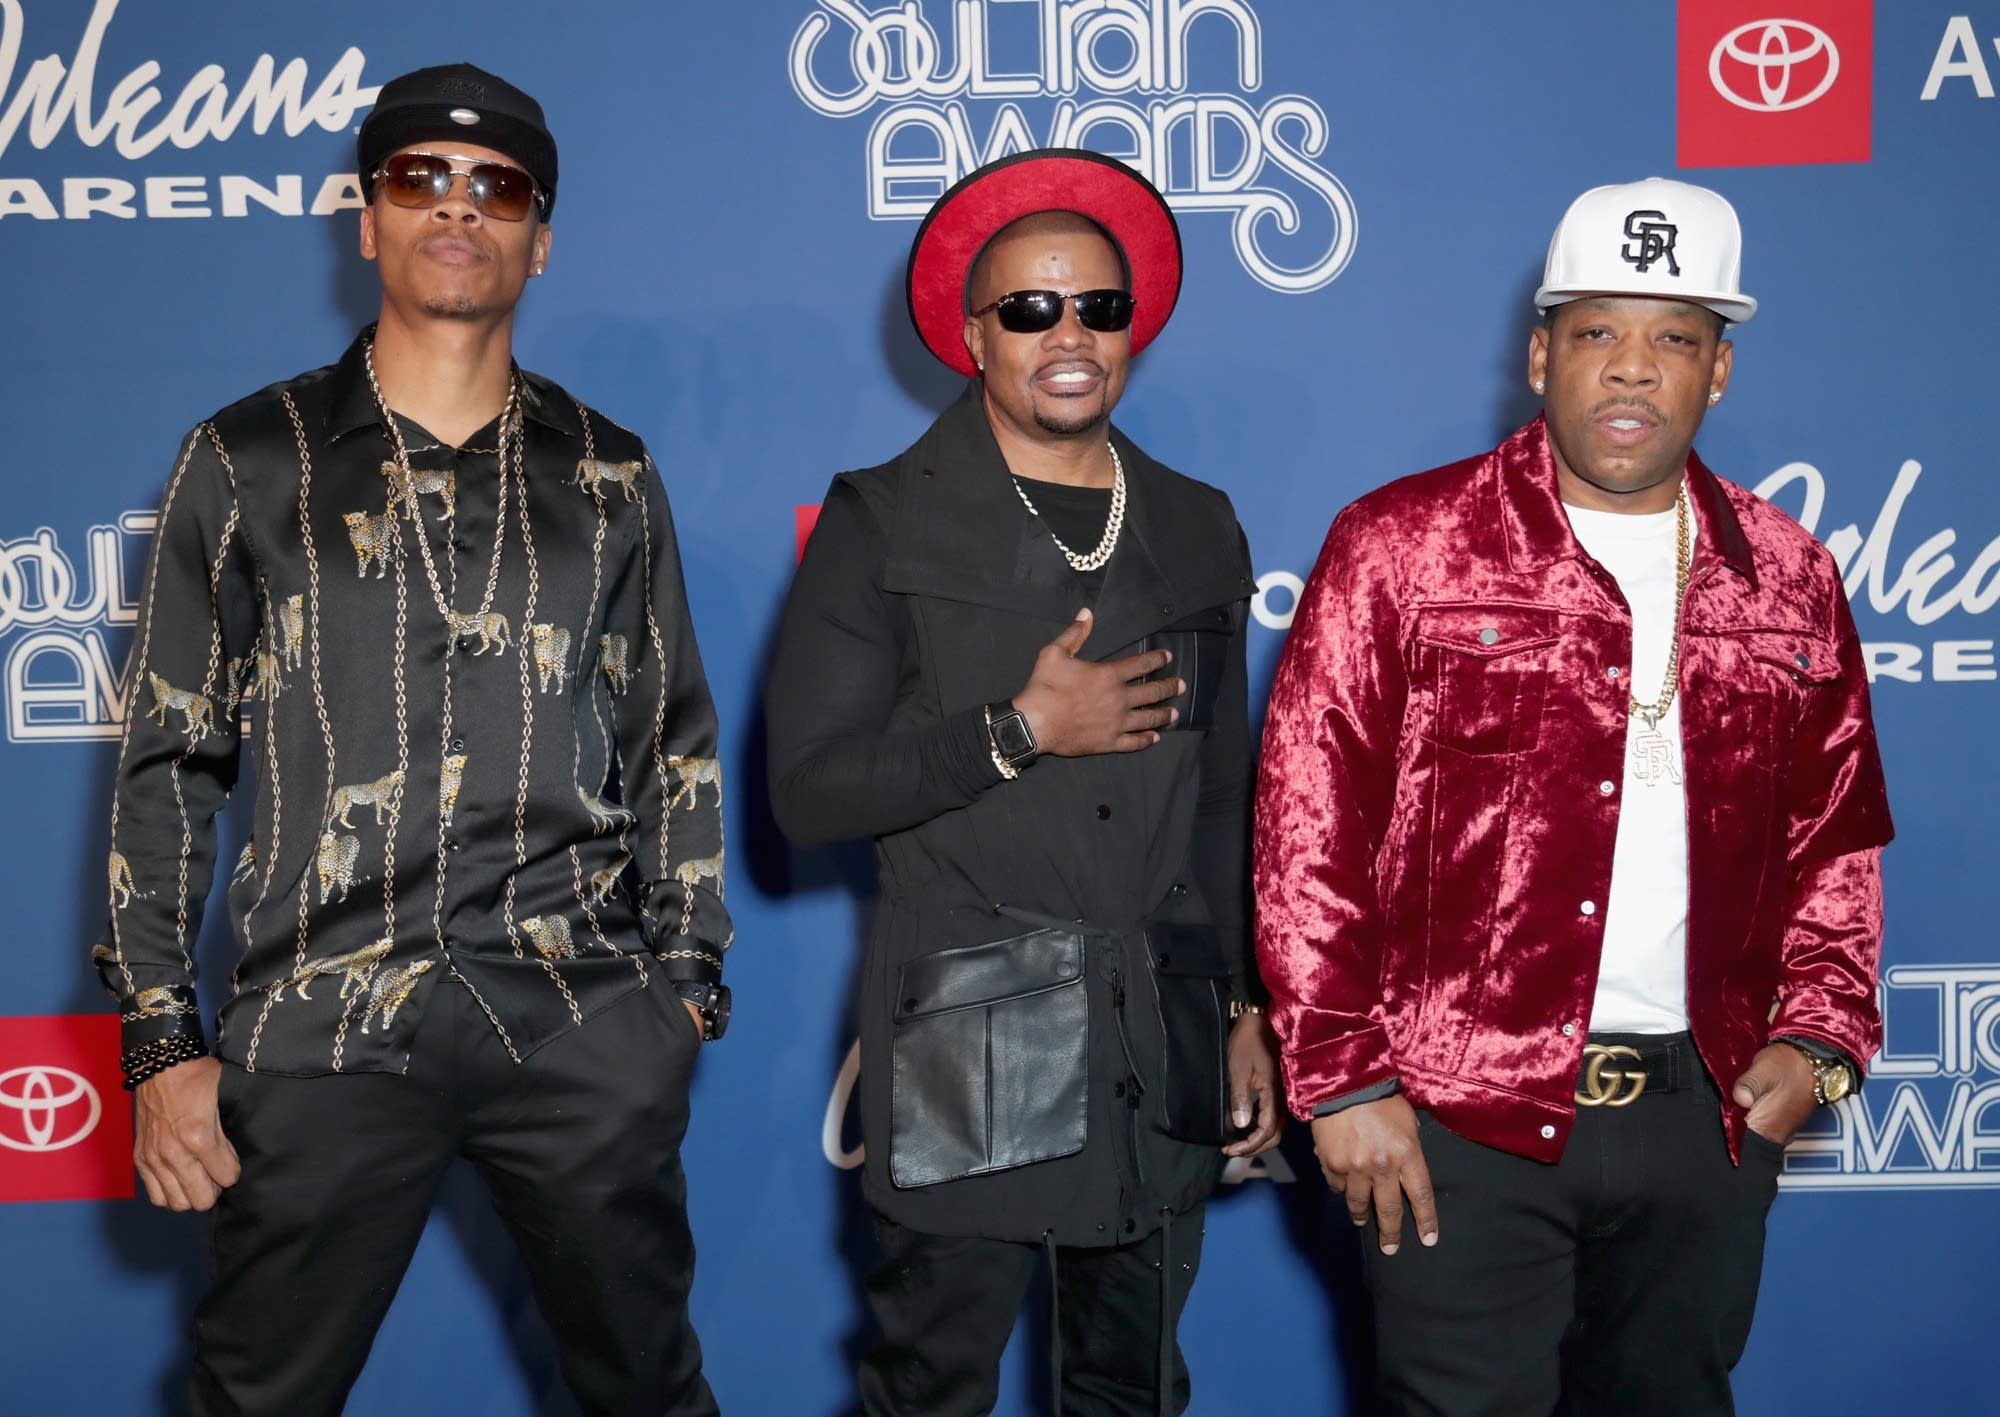 Ronnie DeVoe, Ricky Bell, and Michael Bivins of Bell Biv DeVoe